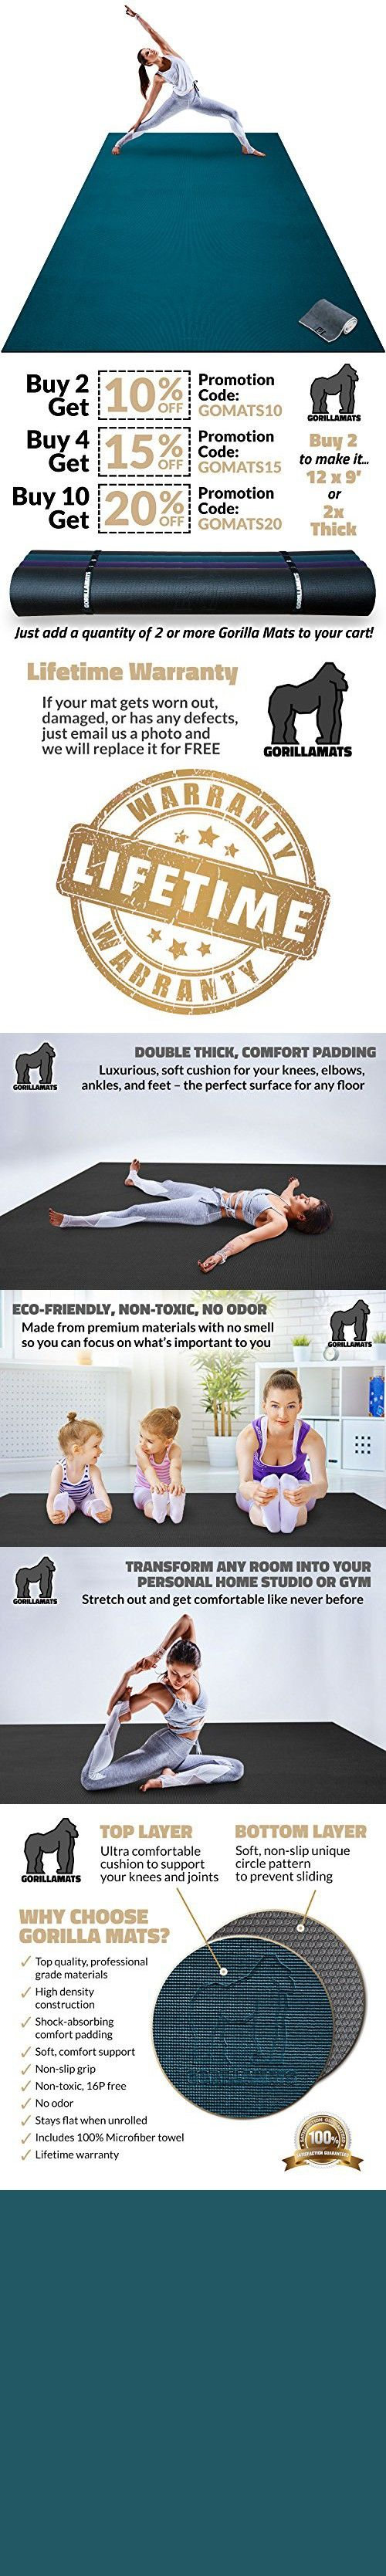 Premium Extra Large Yoga Mat 9 X 6 X 8mm Extra Thick Comfortable Non Toxic Non Slip Barefoot Exercise Mat Yoga Stretching Cardio Workout Mats For H Large Yoga Mat